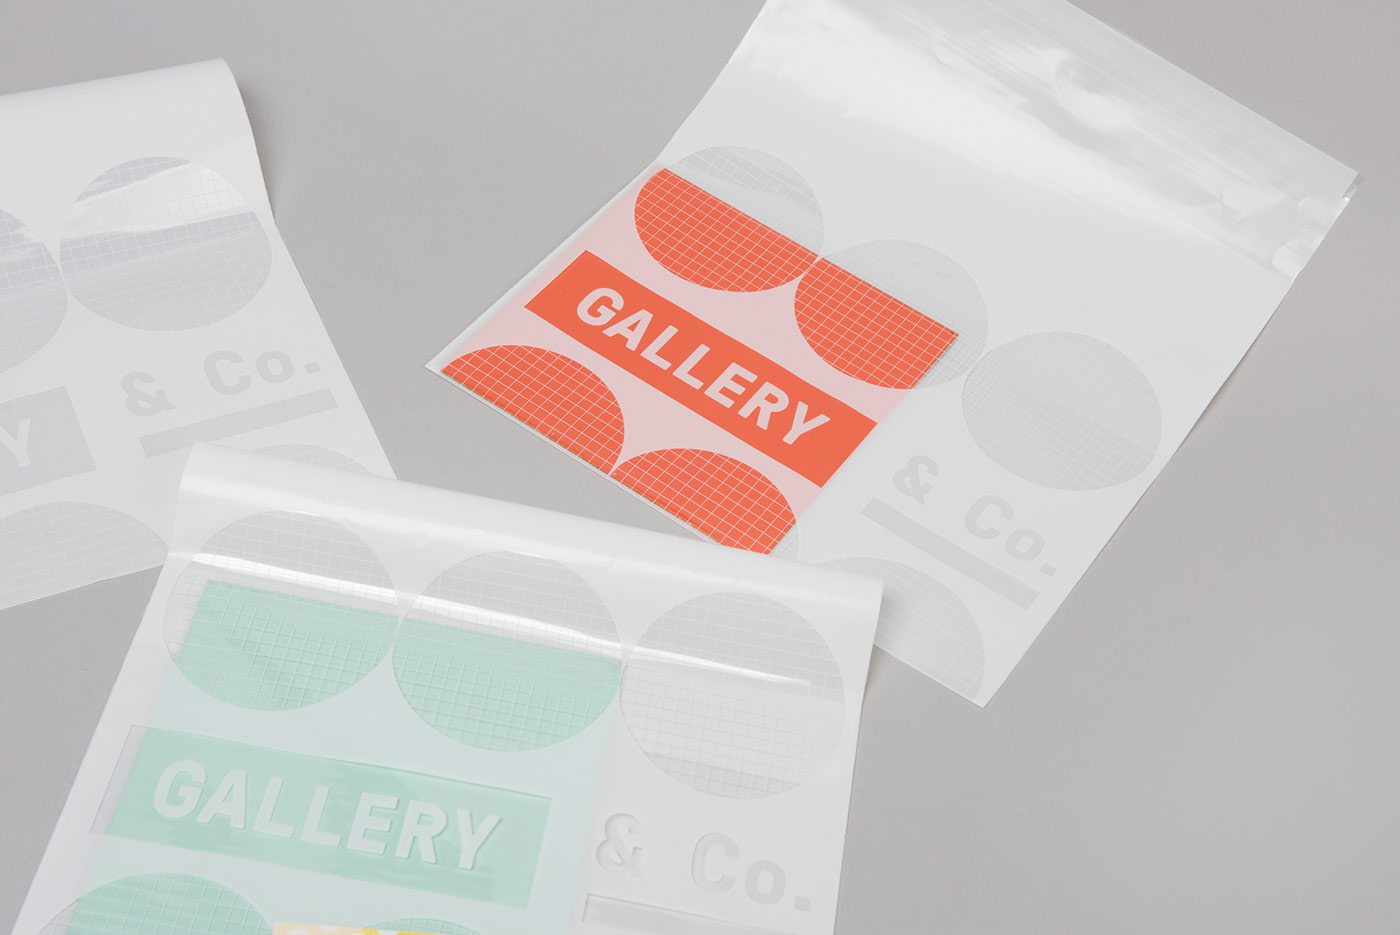 Gallery & Co - Branding by Foreign Policy